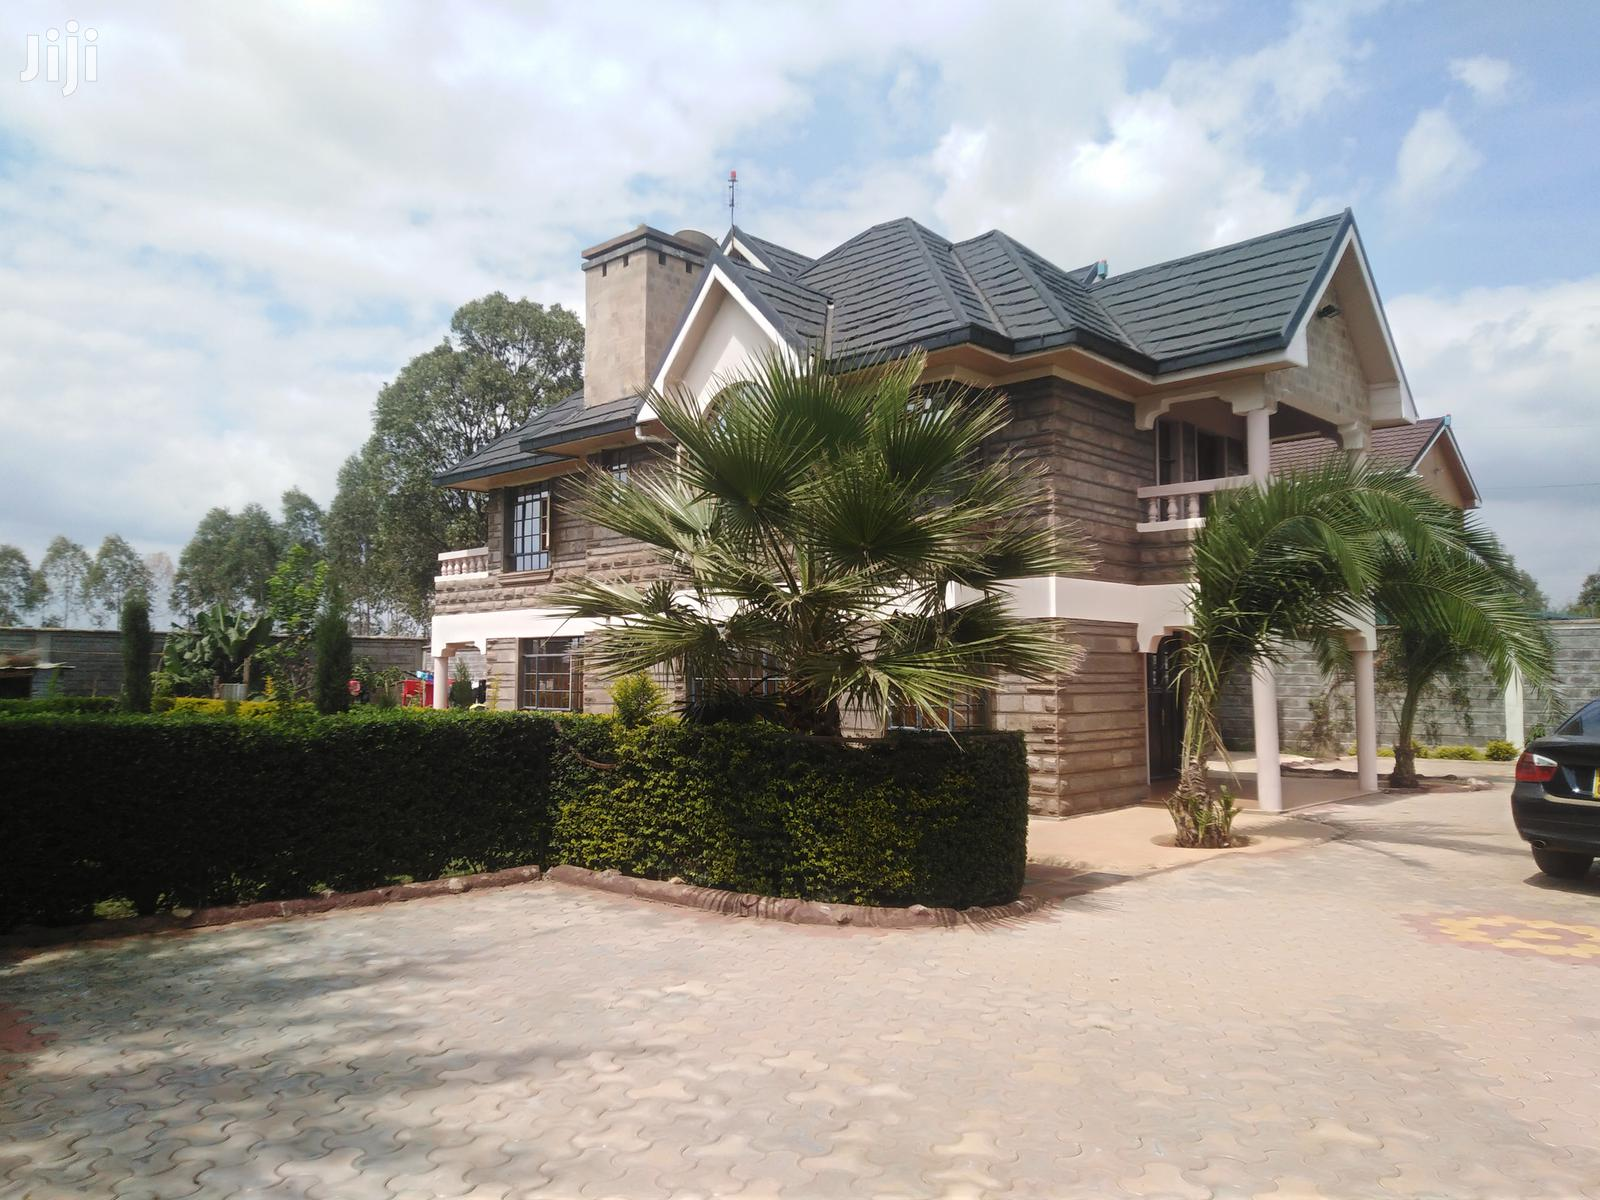 5 Bedroom House Sitting On 1/4 Acre For Sale In Ruiru Bypass